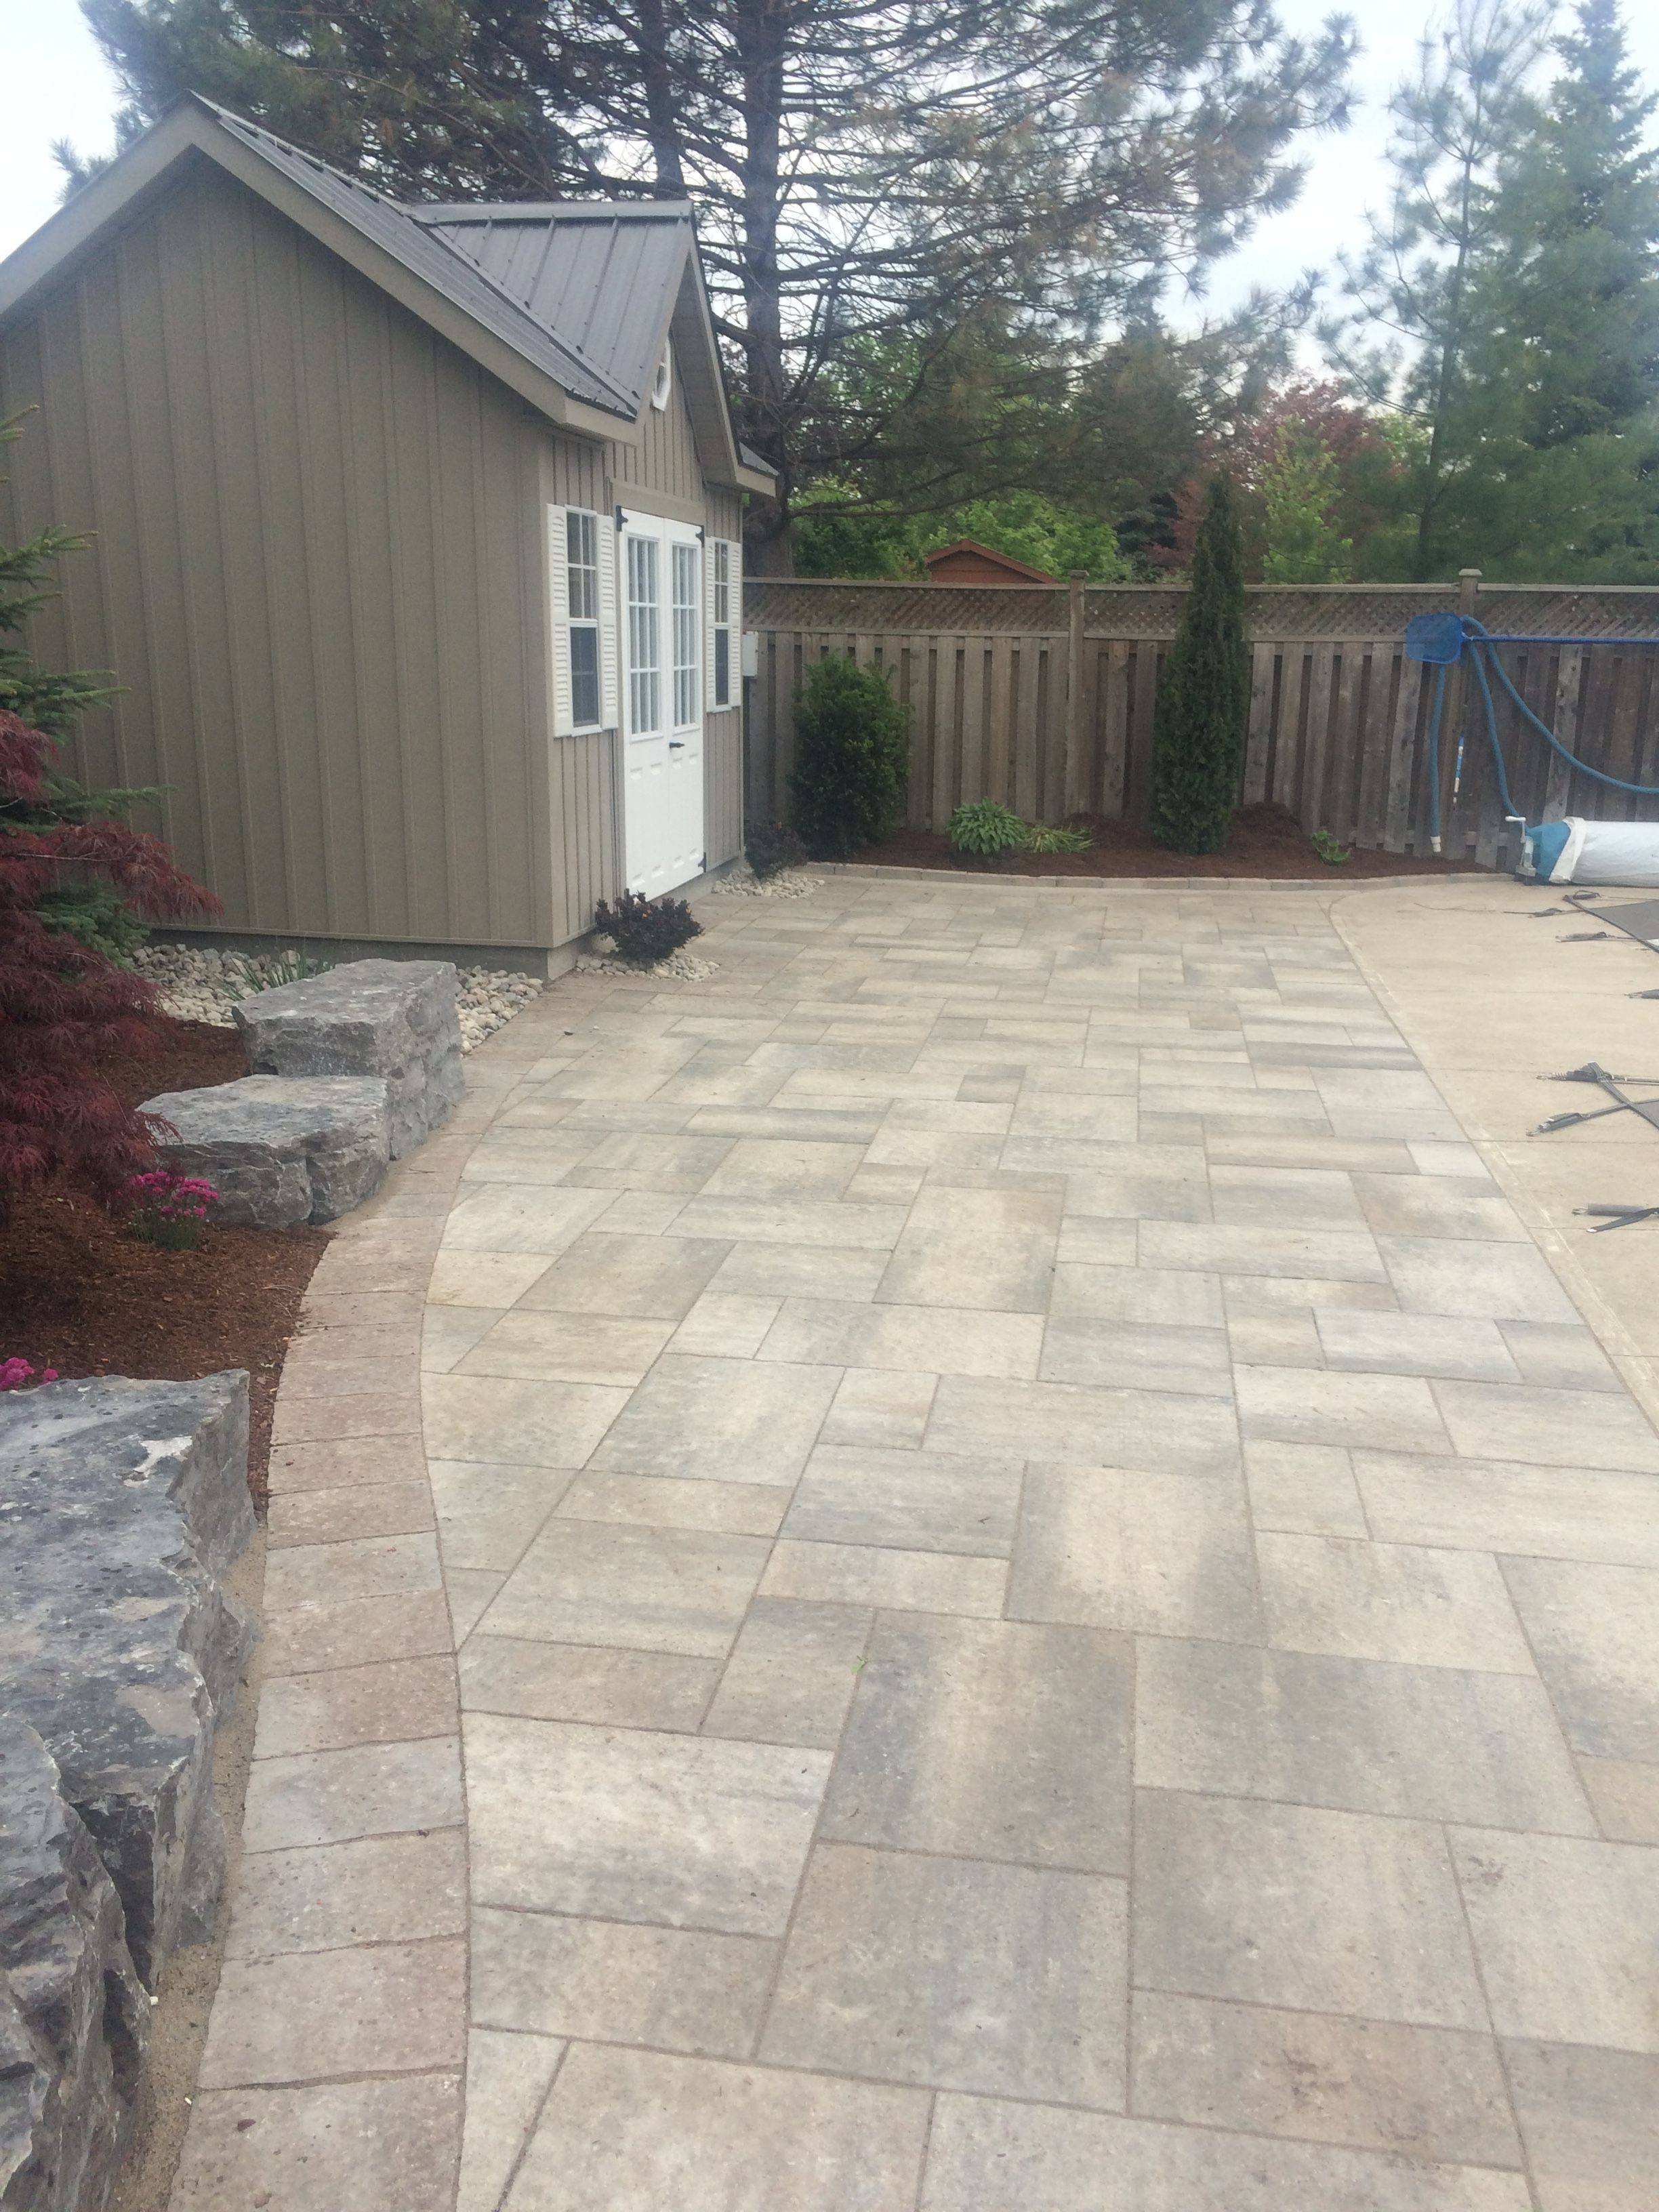 Prestige Landscaping recently installed this poolside Oaks Rialto